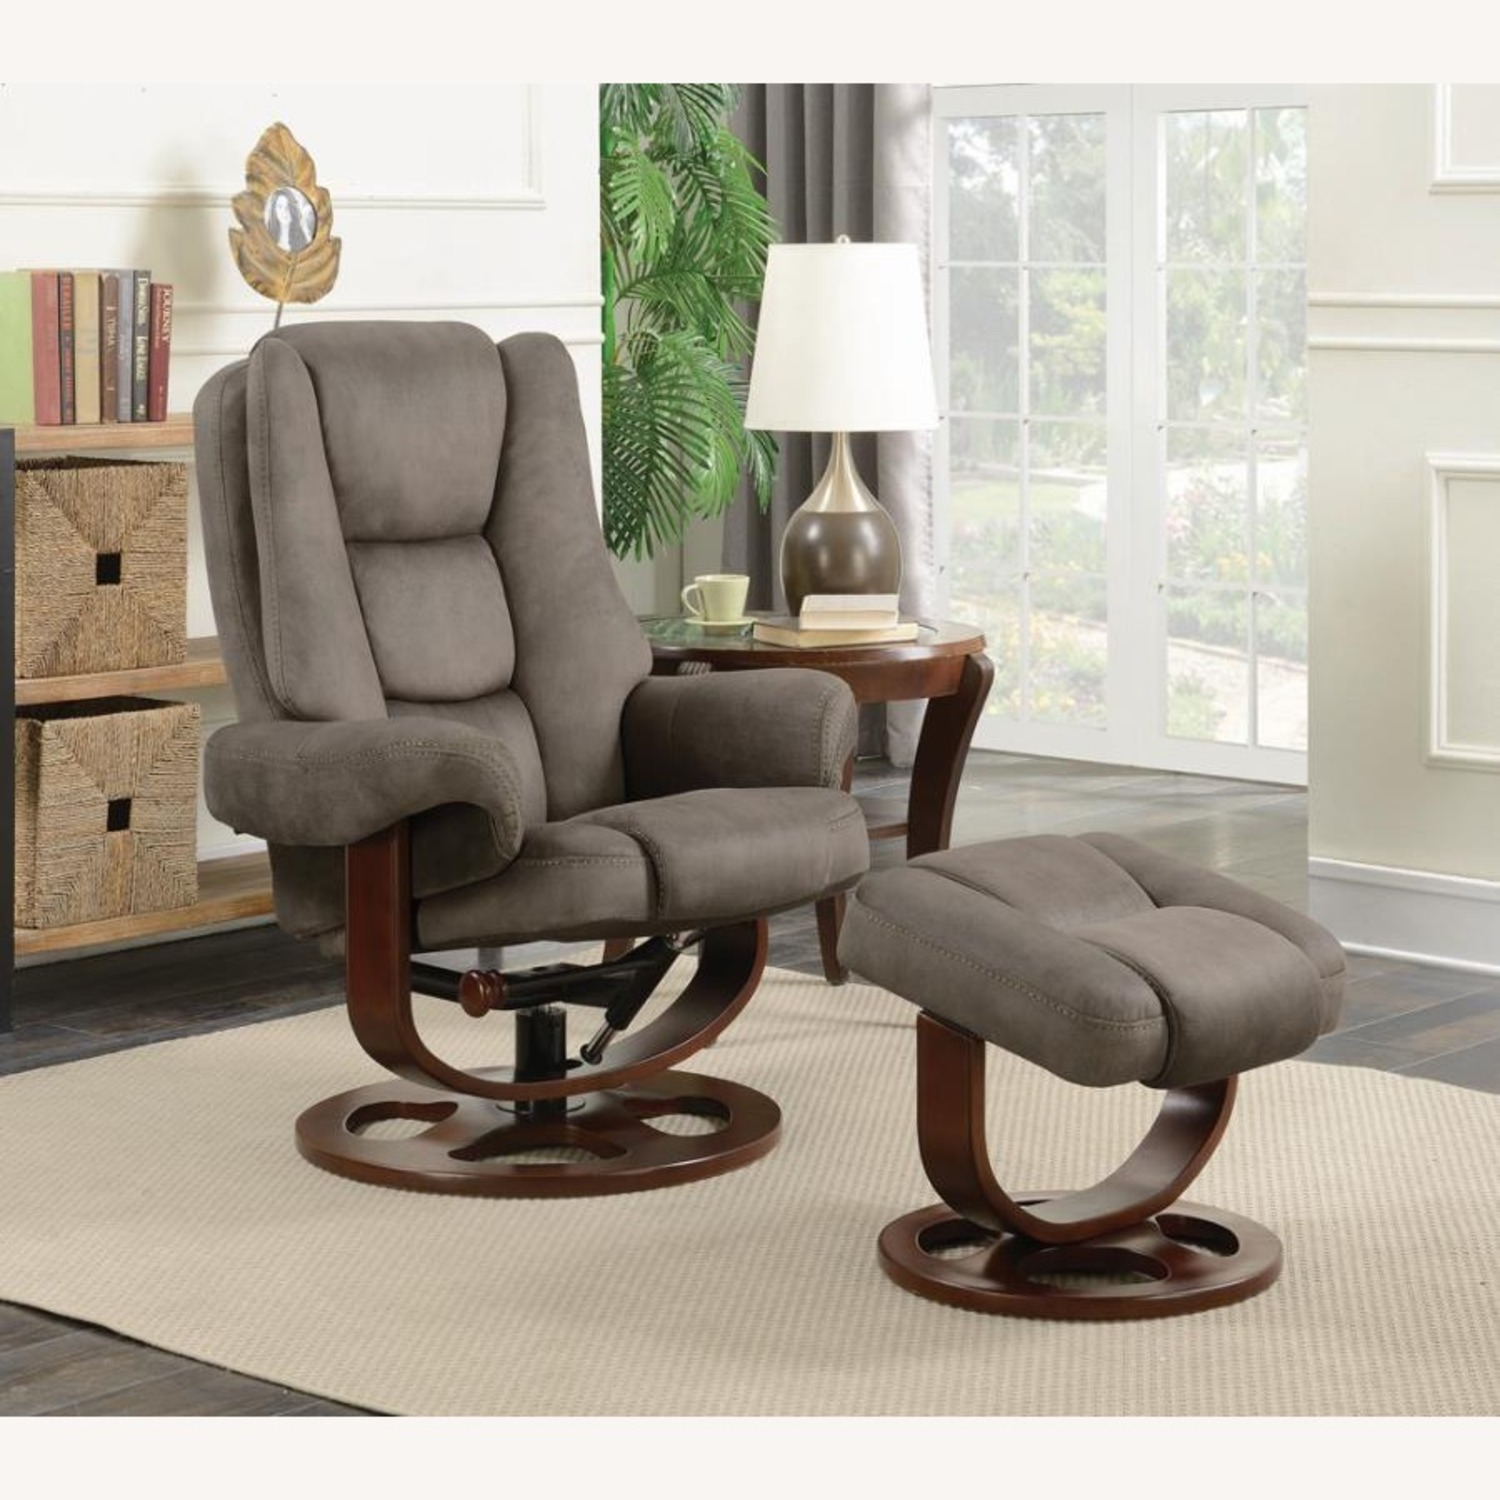 Recliner W/ Ottoman In 2-Tone Grey Faux Suede - image-7